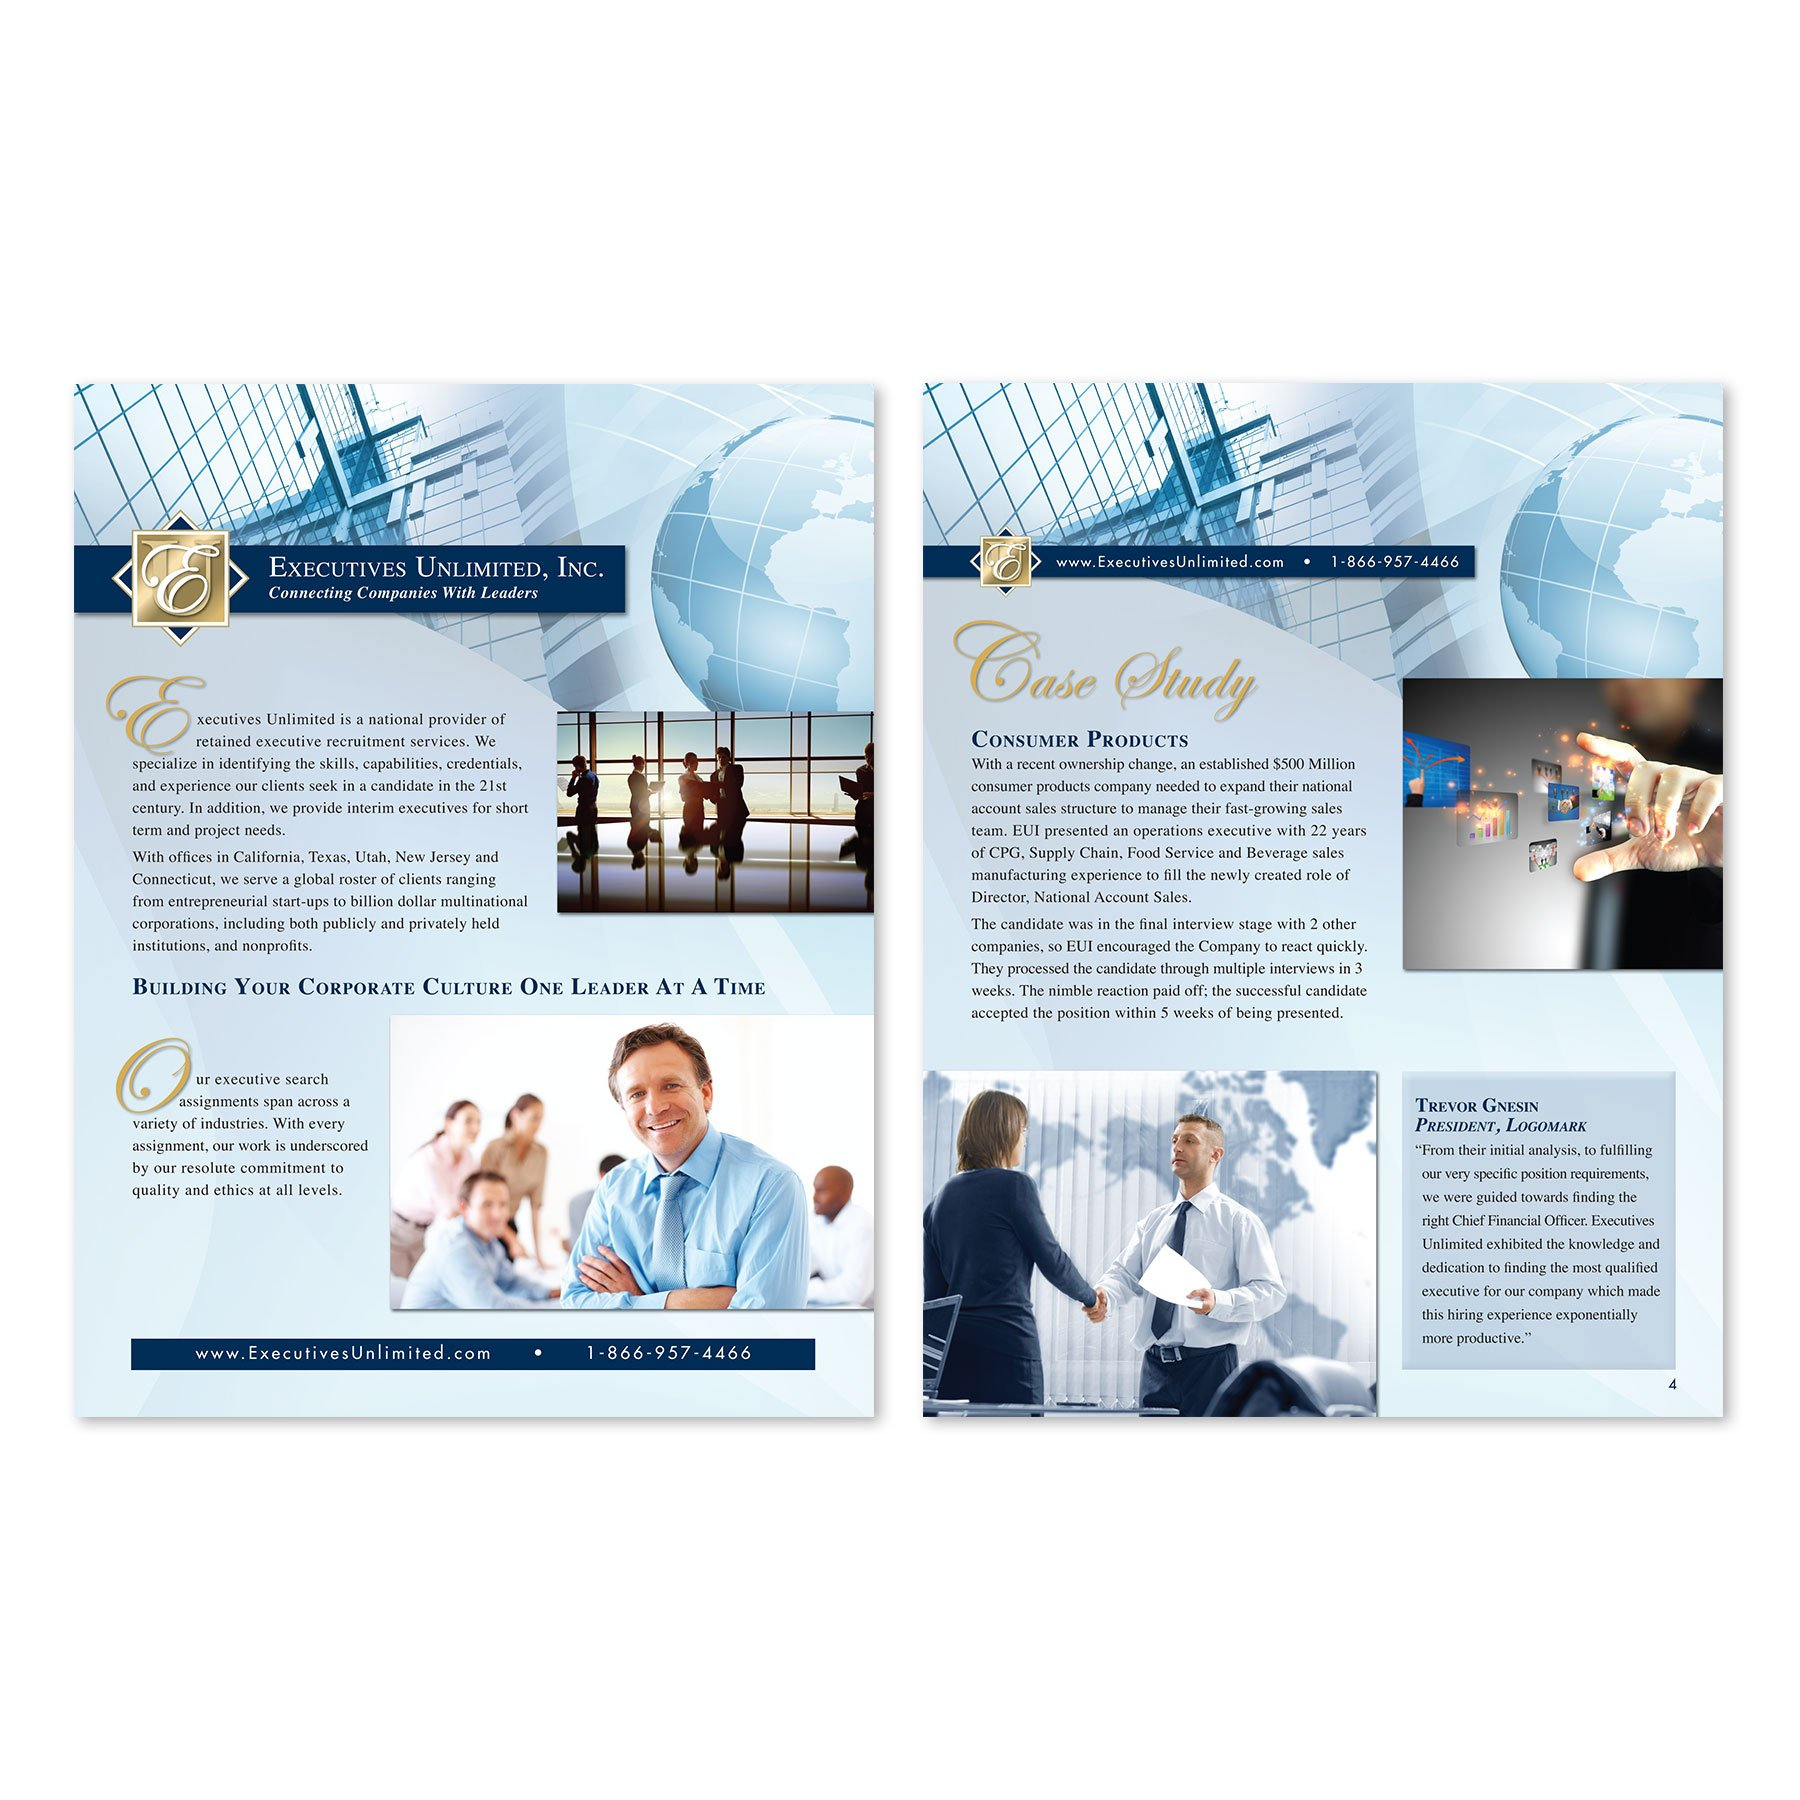 Executives Unlimited Online Brochure